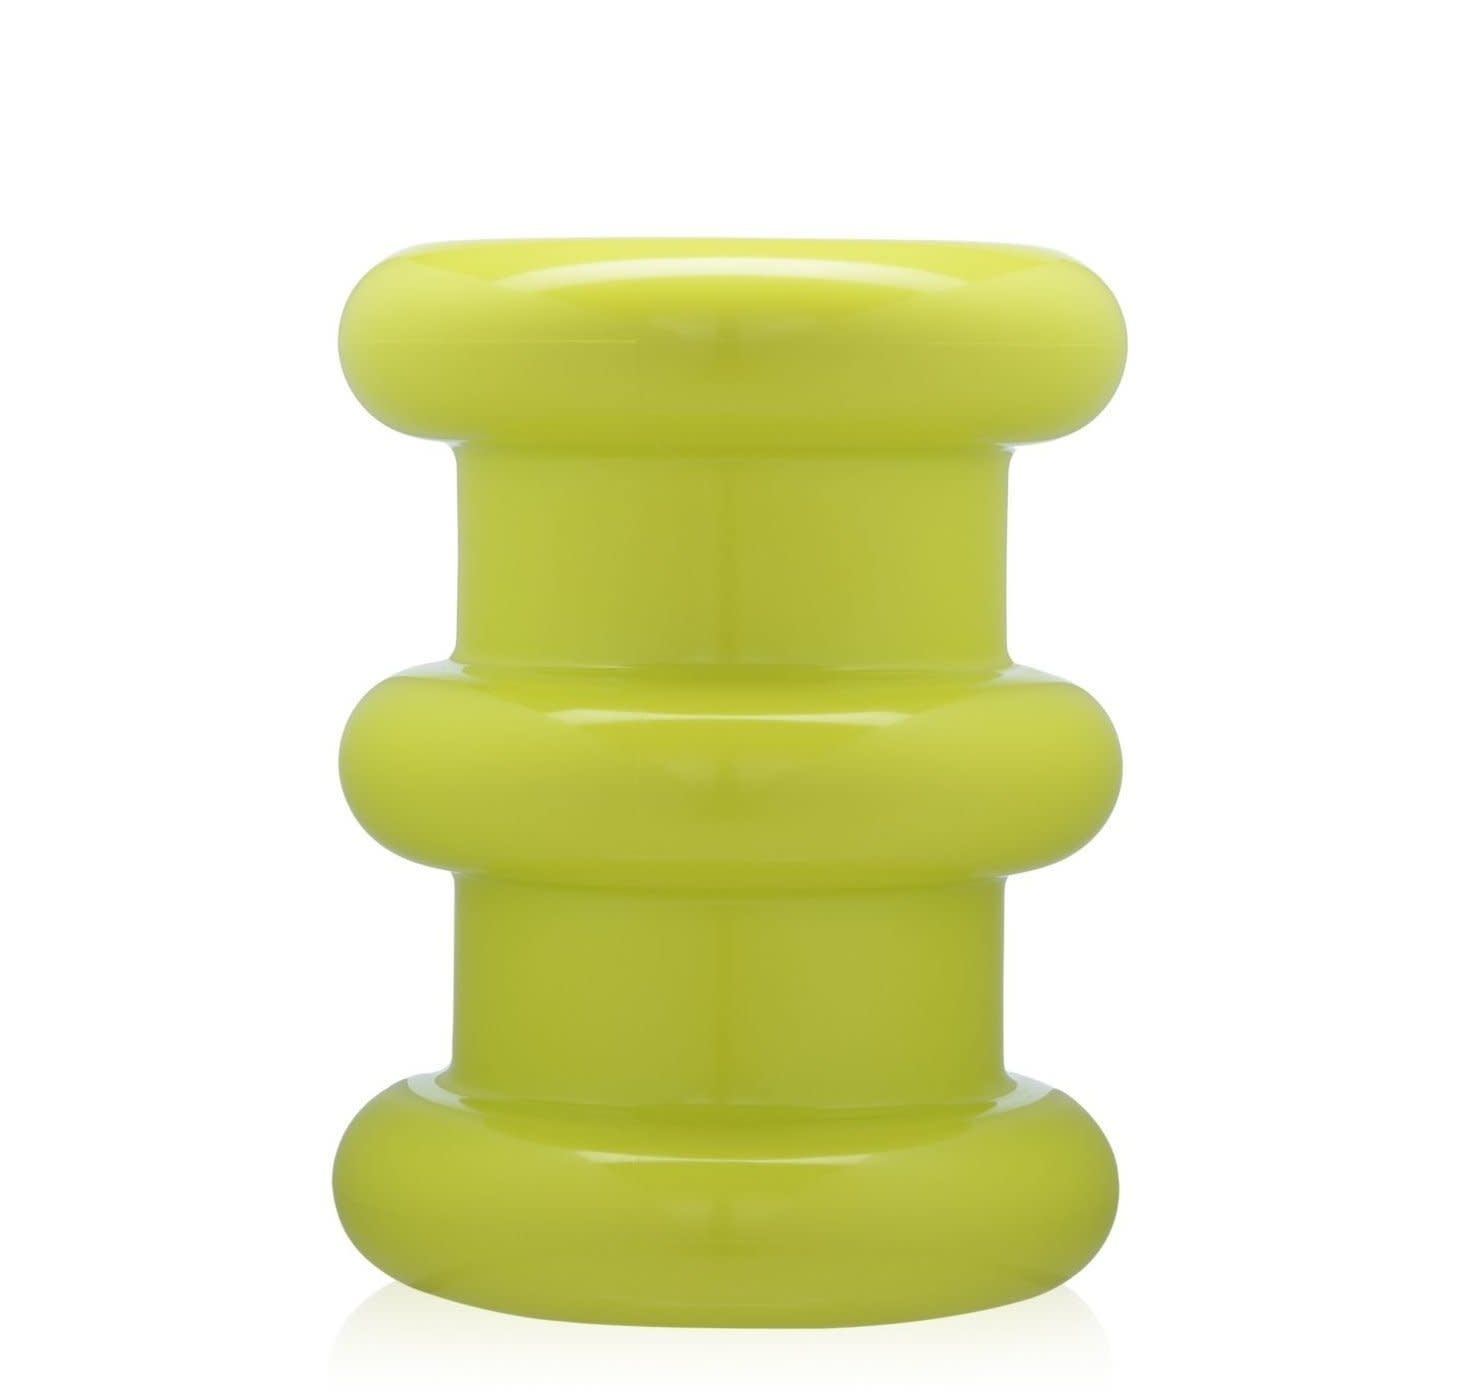 Kartell Pilastro Stool/Side Table in Neon Green